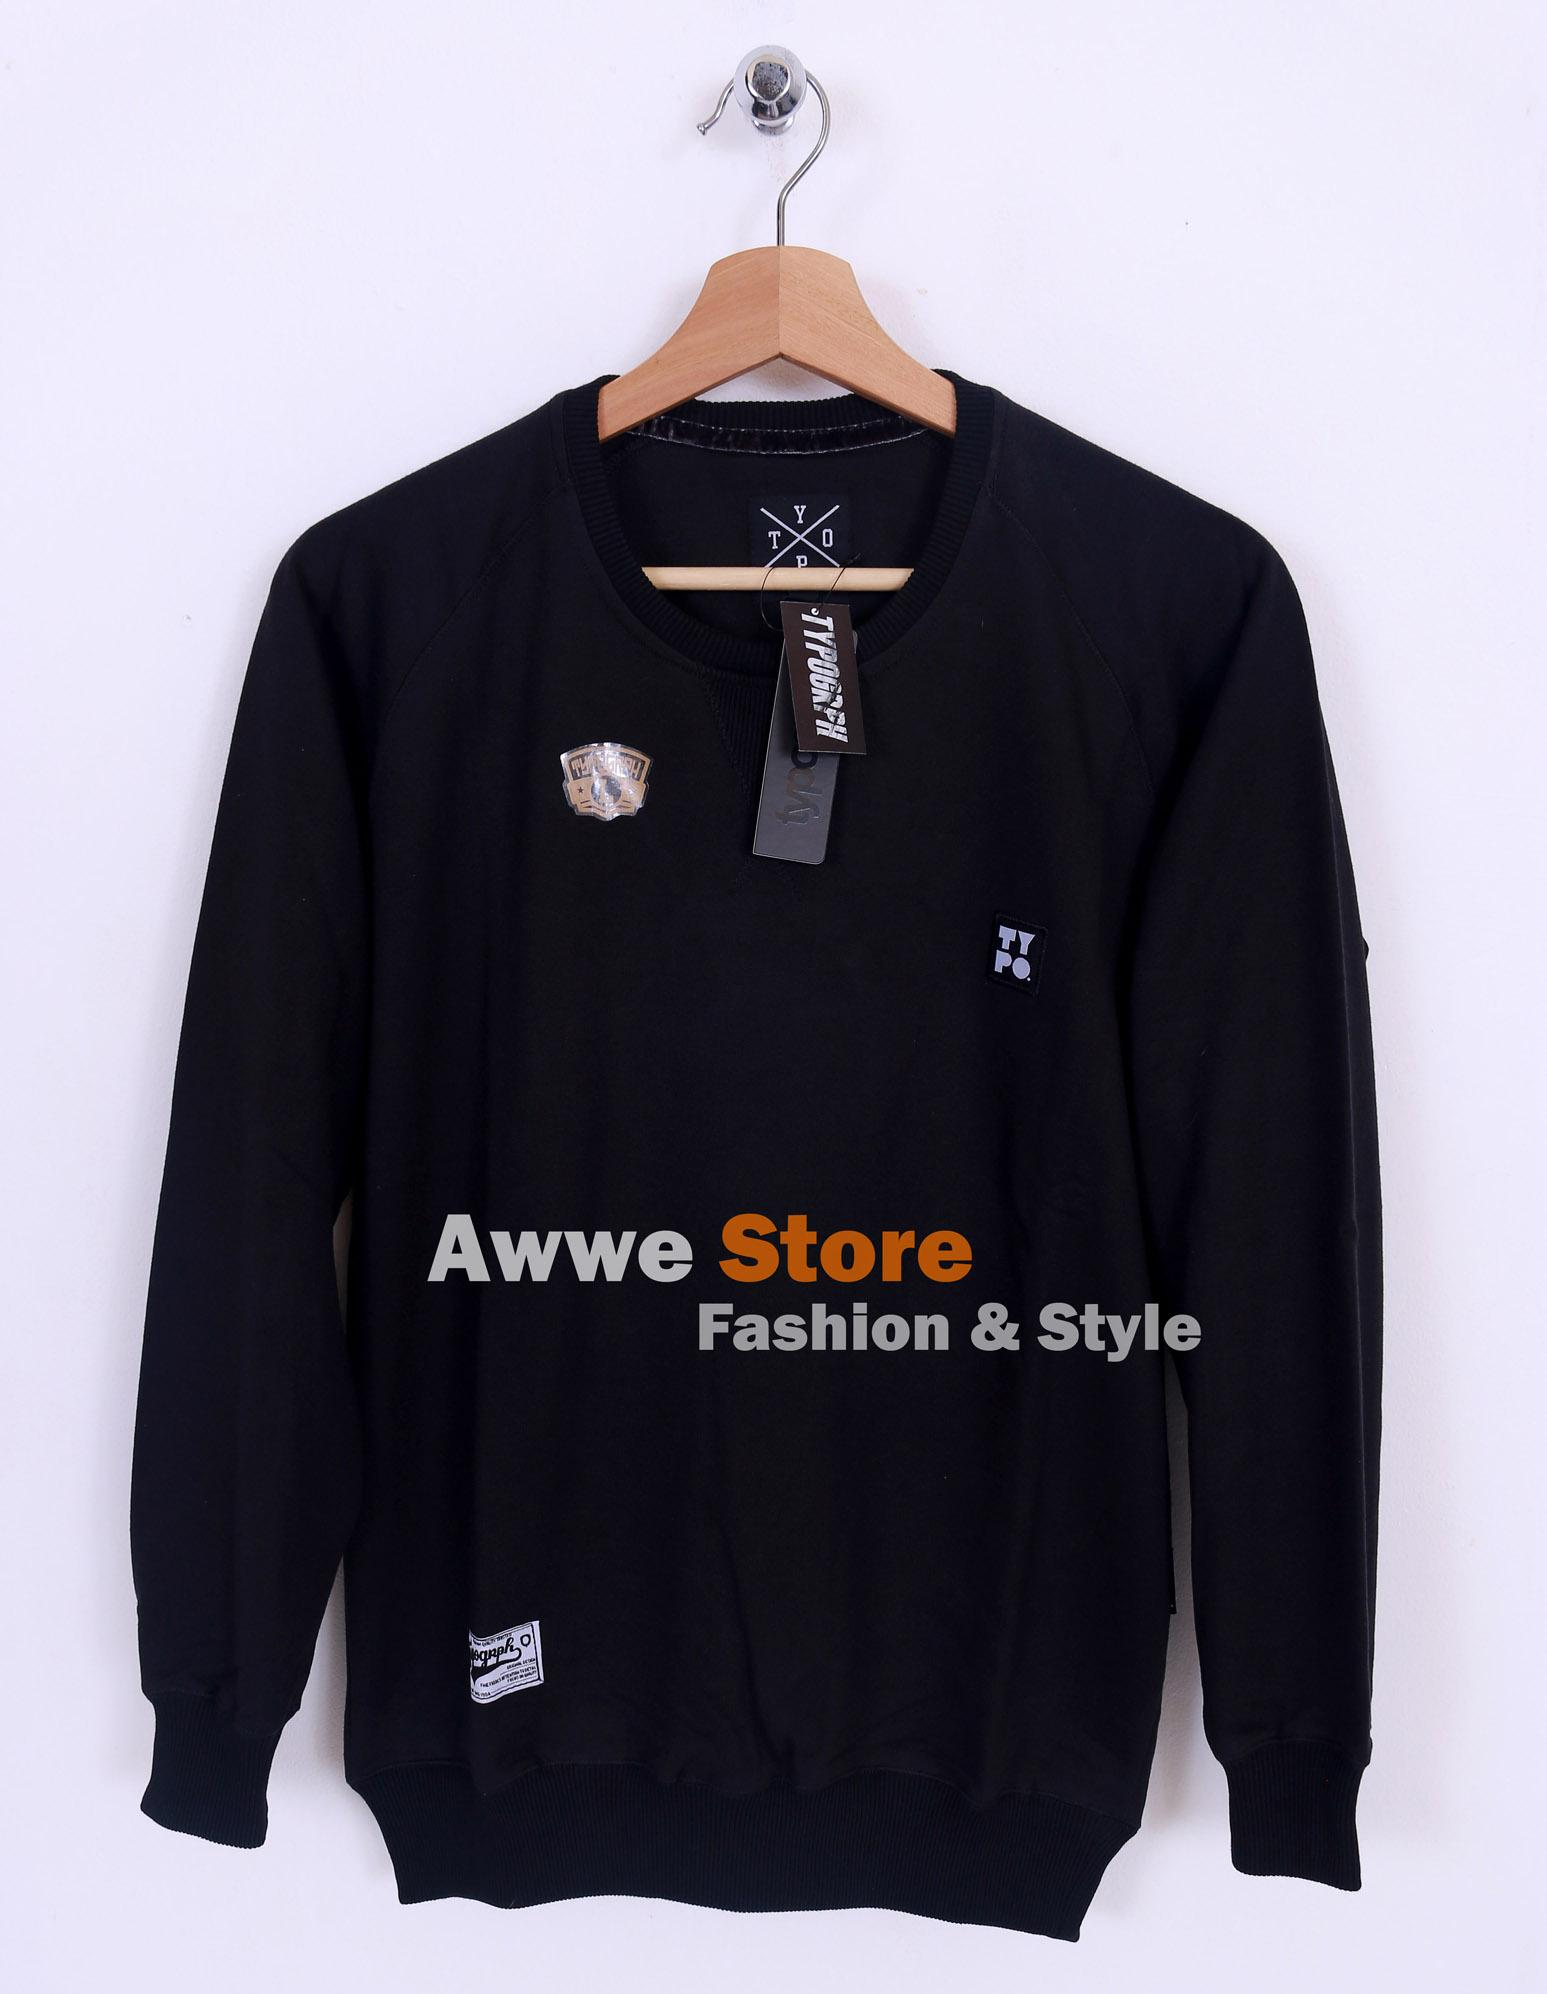 Awwe Store Sweater termurah / sweater pria / sweater distro / sweater tanah abang / sweater fashion / jaket / sweater thypograph 06